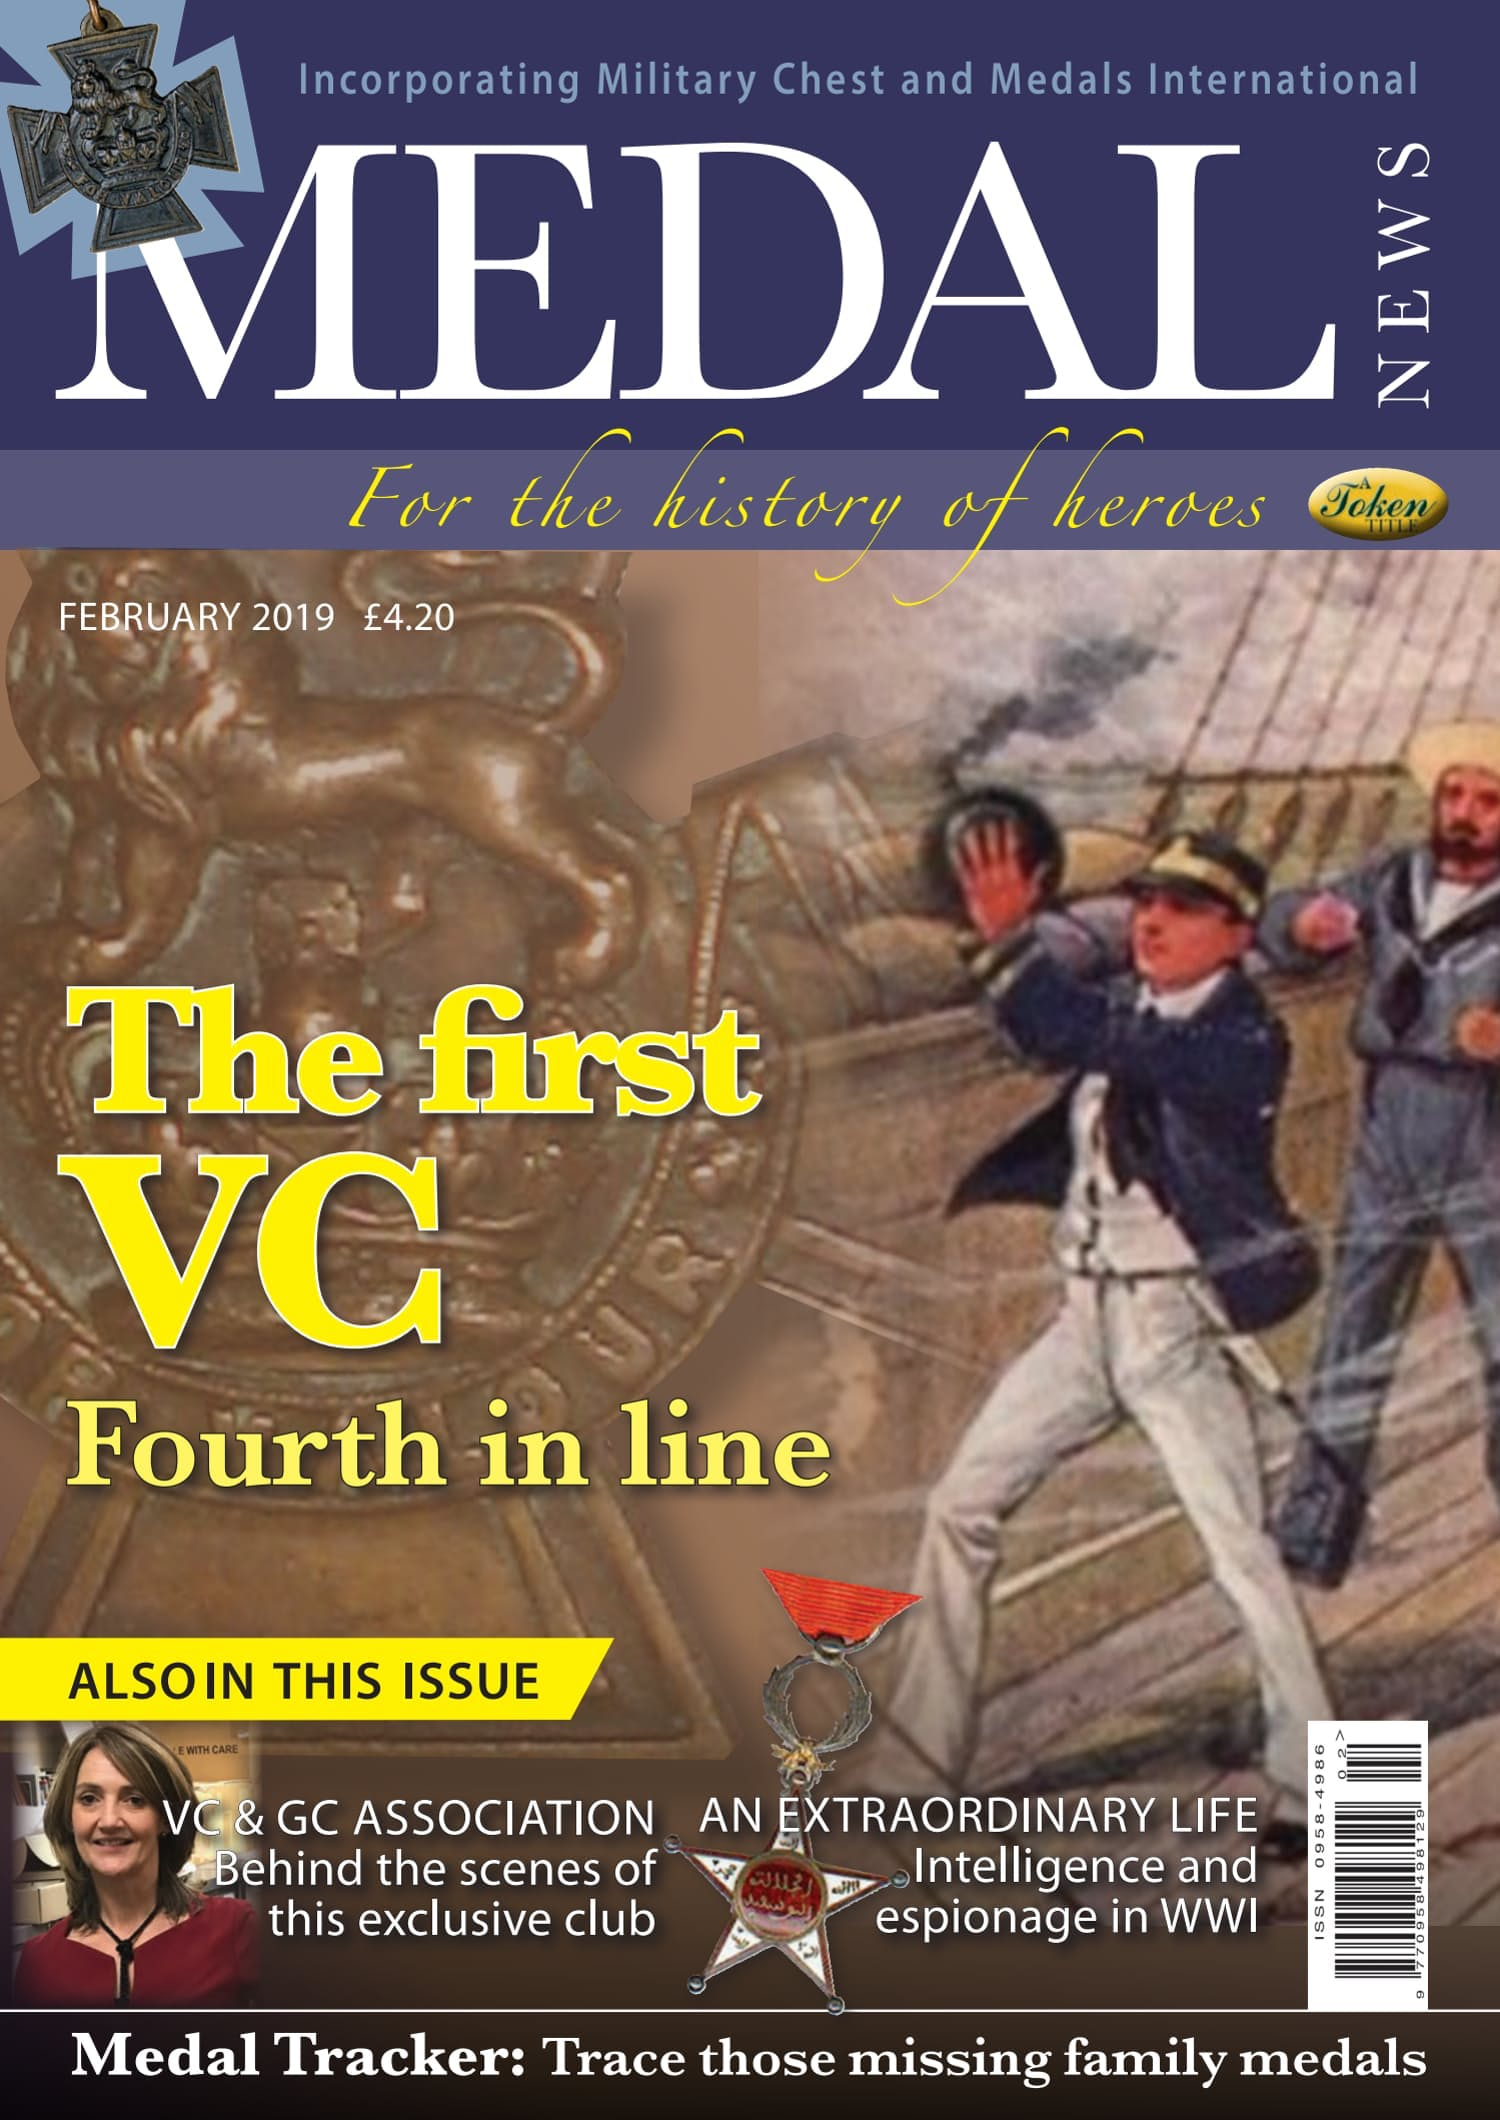 Front cover of 'The First VC', Medal News February 2019, Volume 57, Number 2 by Token Publishing